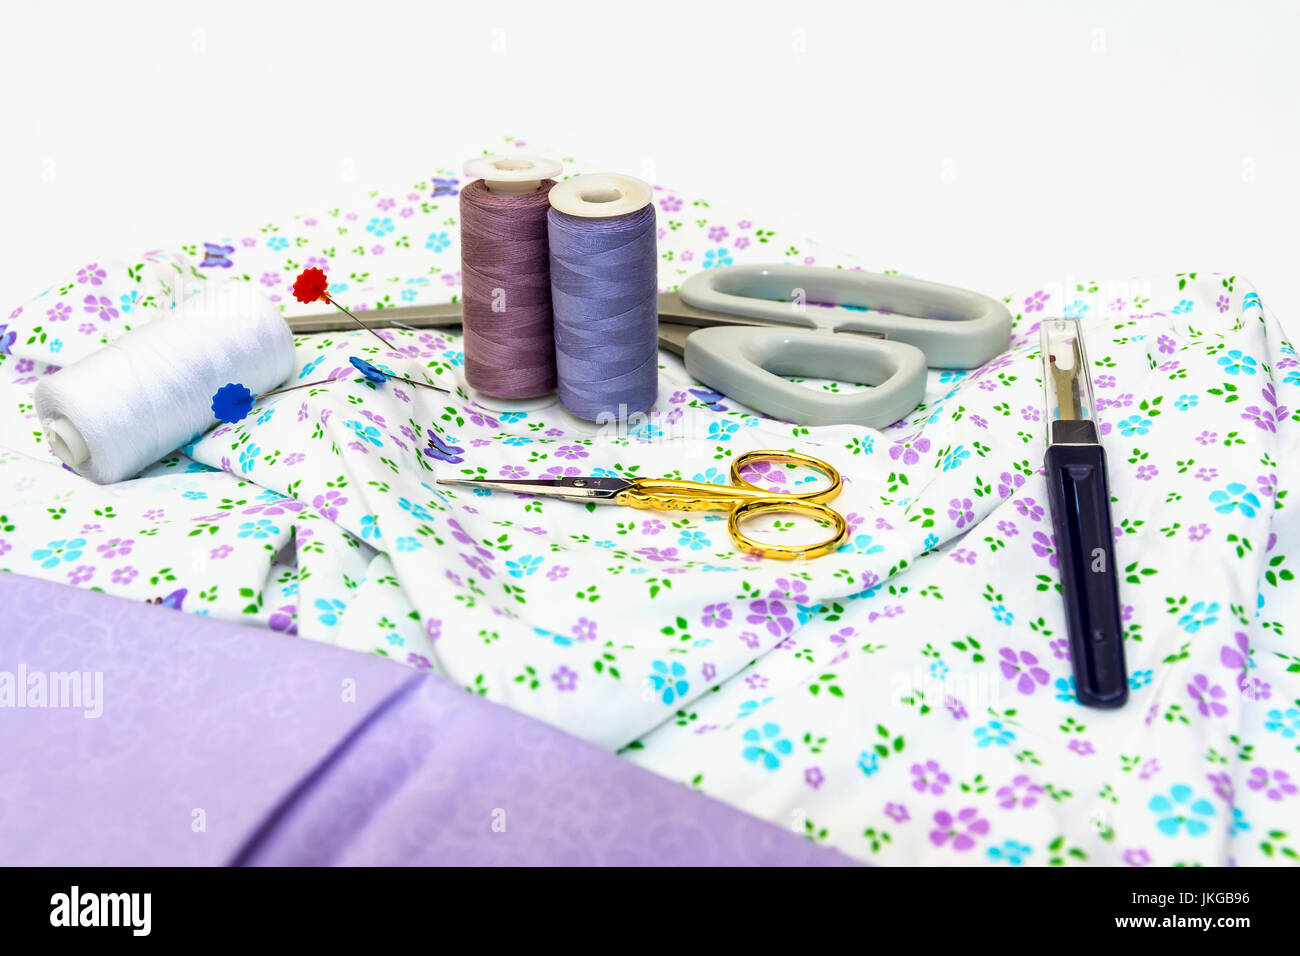 A selection of Sewing Accessories, including Scissors, Cotton, with Plain and Pattern Fabric displayed on white background. Stock Photo